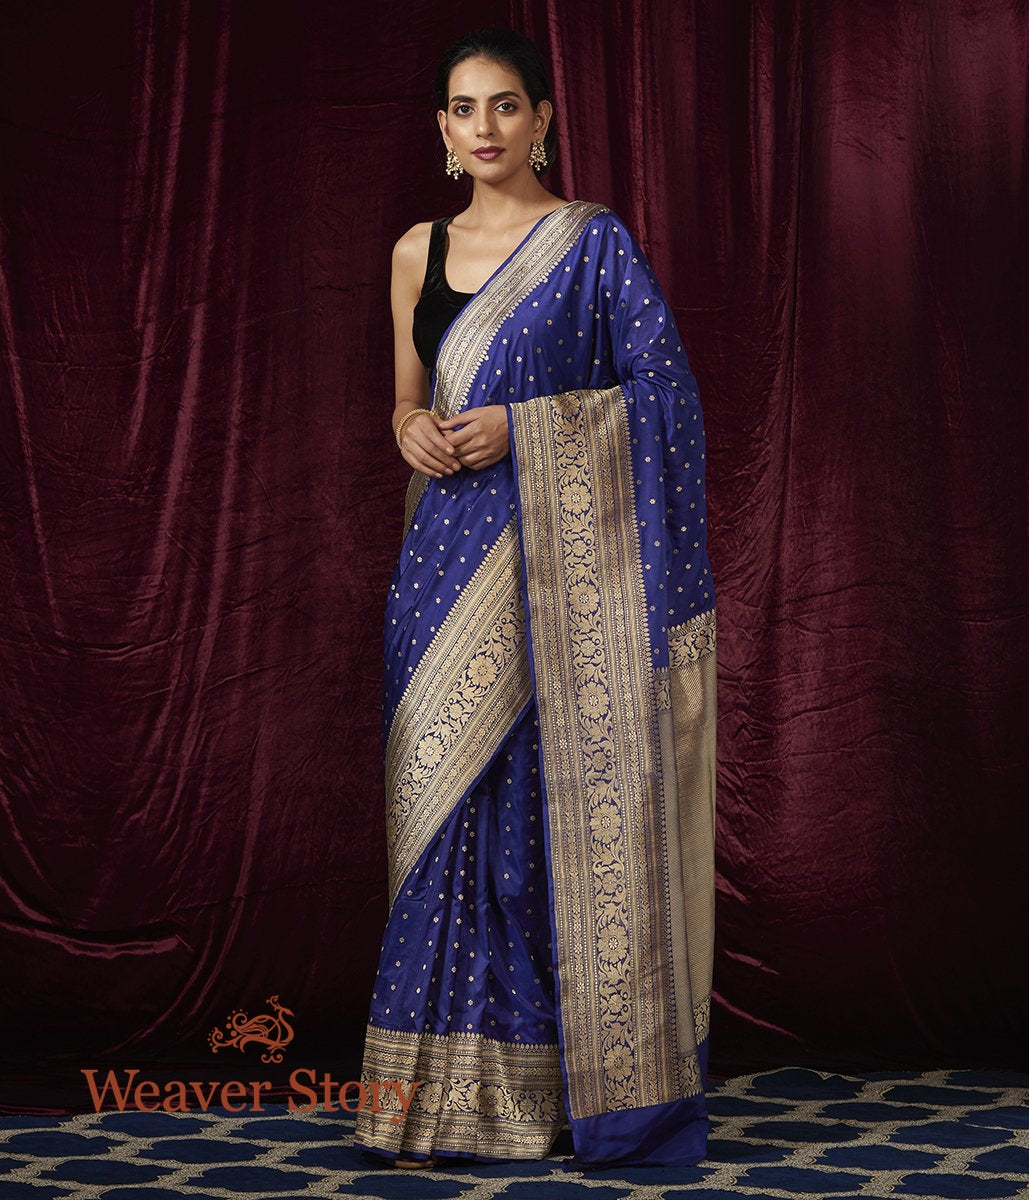 Handwoven Royal Blue Small Floral Booti Saree with Broad Border